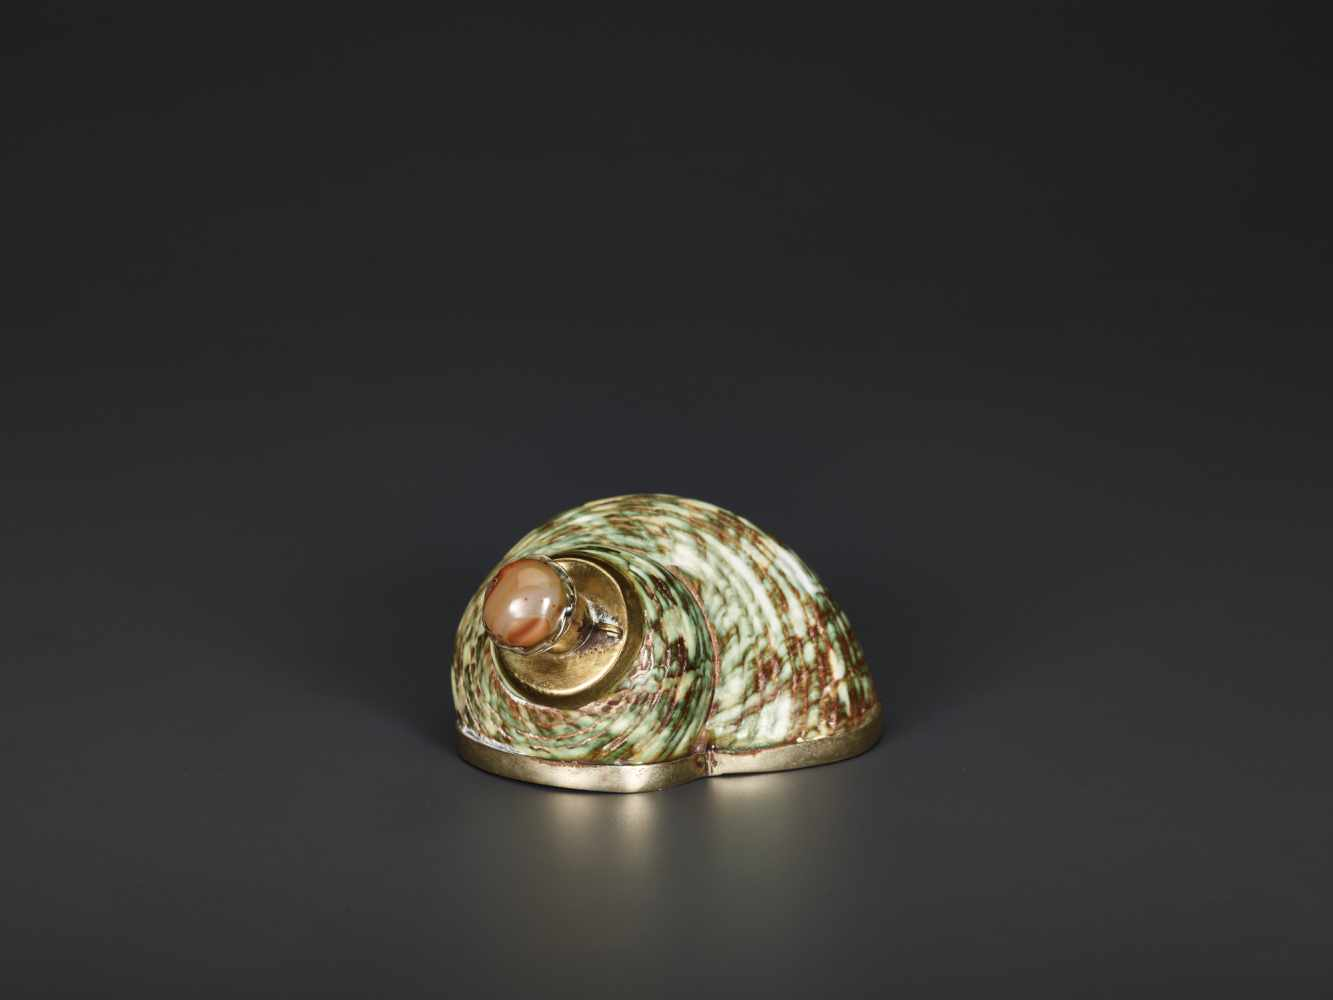 TURBO CONCH PERFUME CONTAINER WITH AGATE STOPPER, 19th CENTURYTurbo conch, silver plate metal and - Image 5 of 6